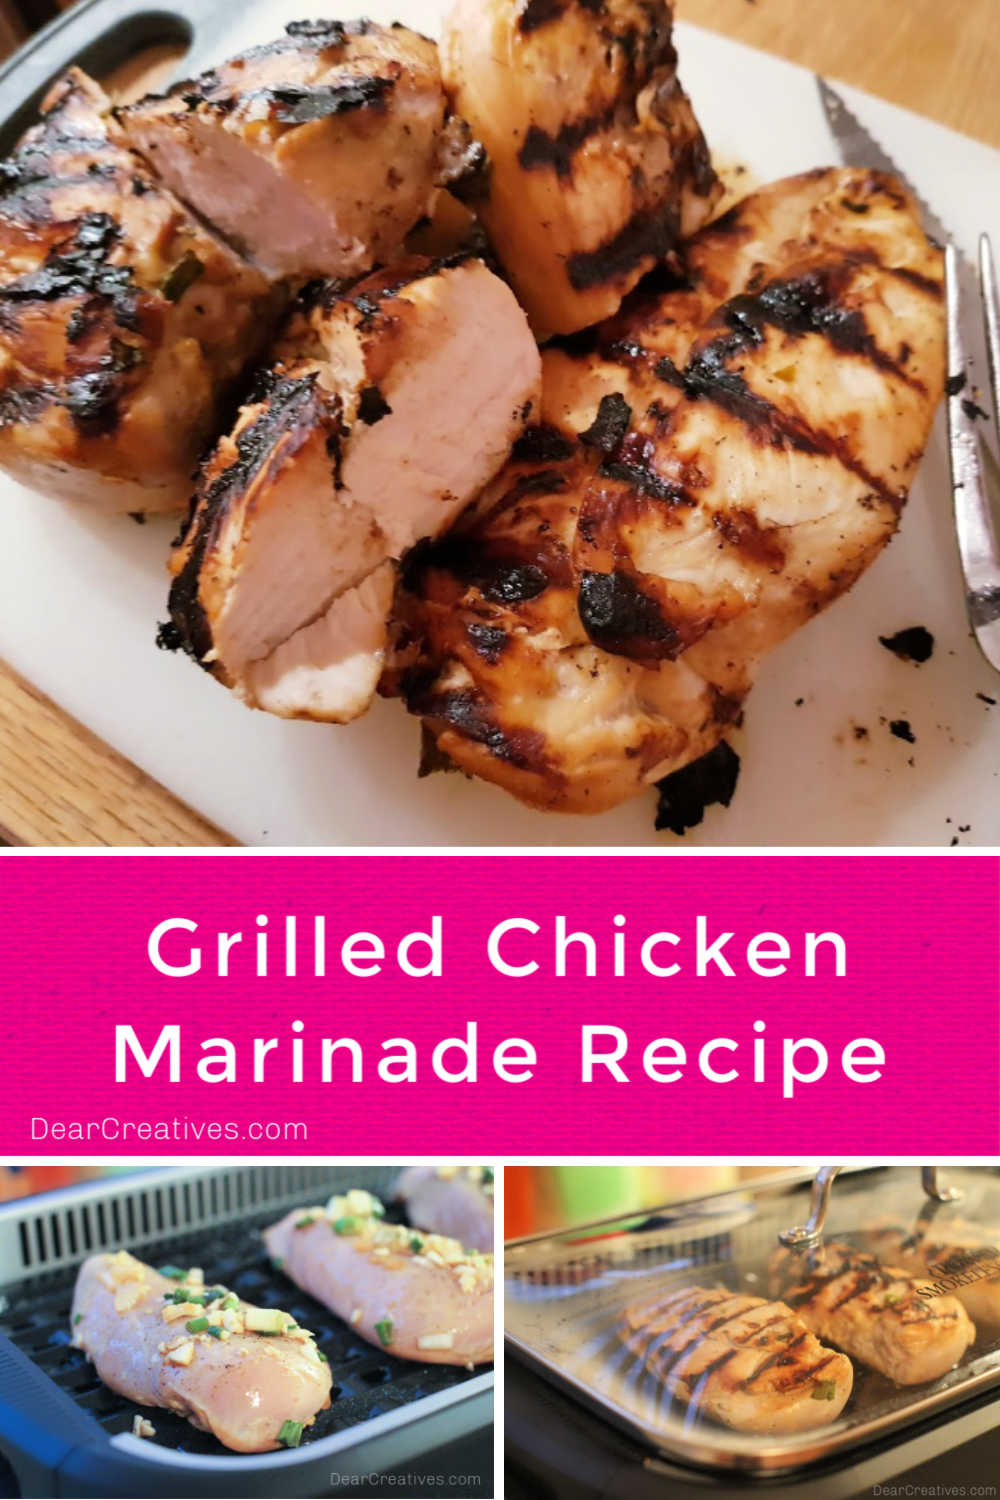 Grilled Chicken Marinade Recipe (Grill, Stove or Oven)